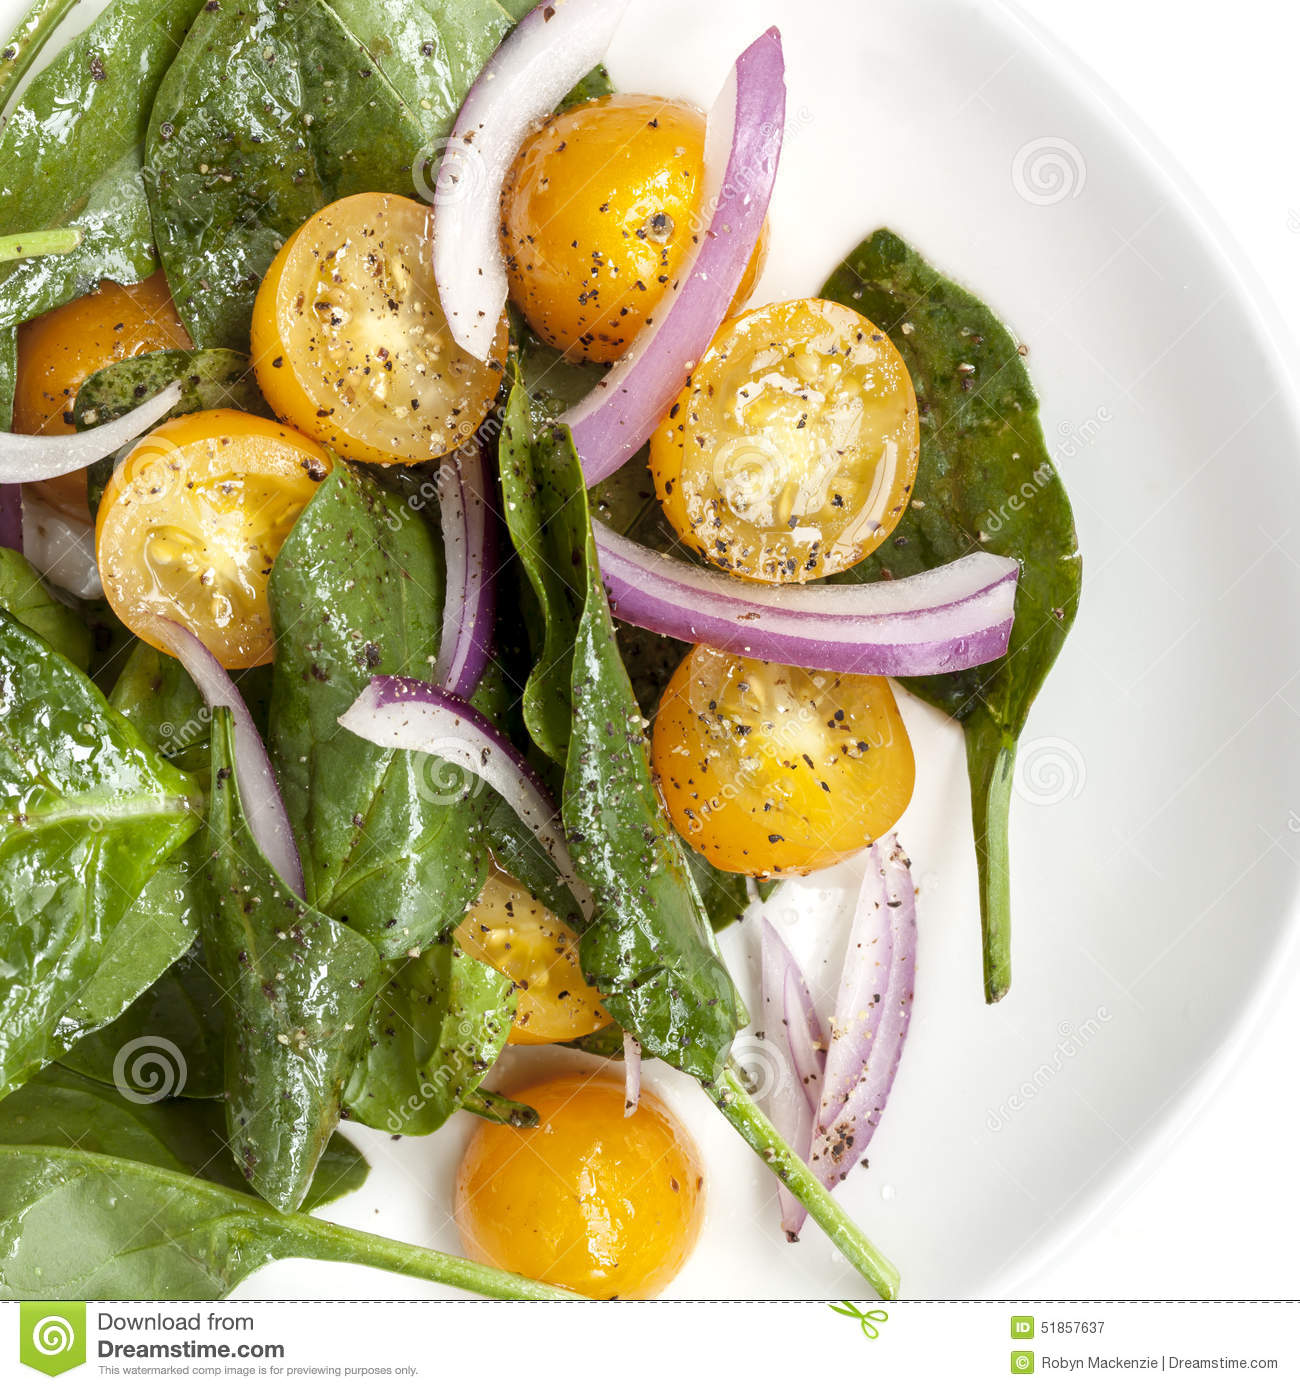 Spinach Salad with Yellow Cherry Tomatoes and Red Onion